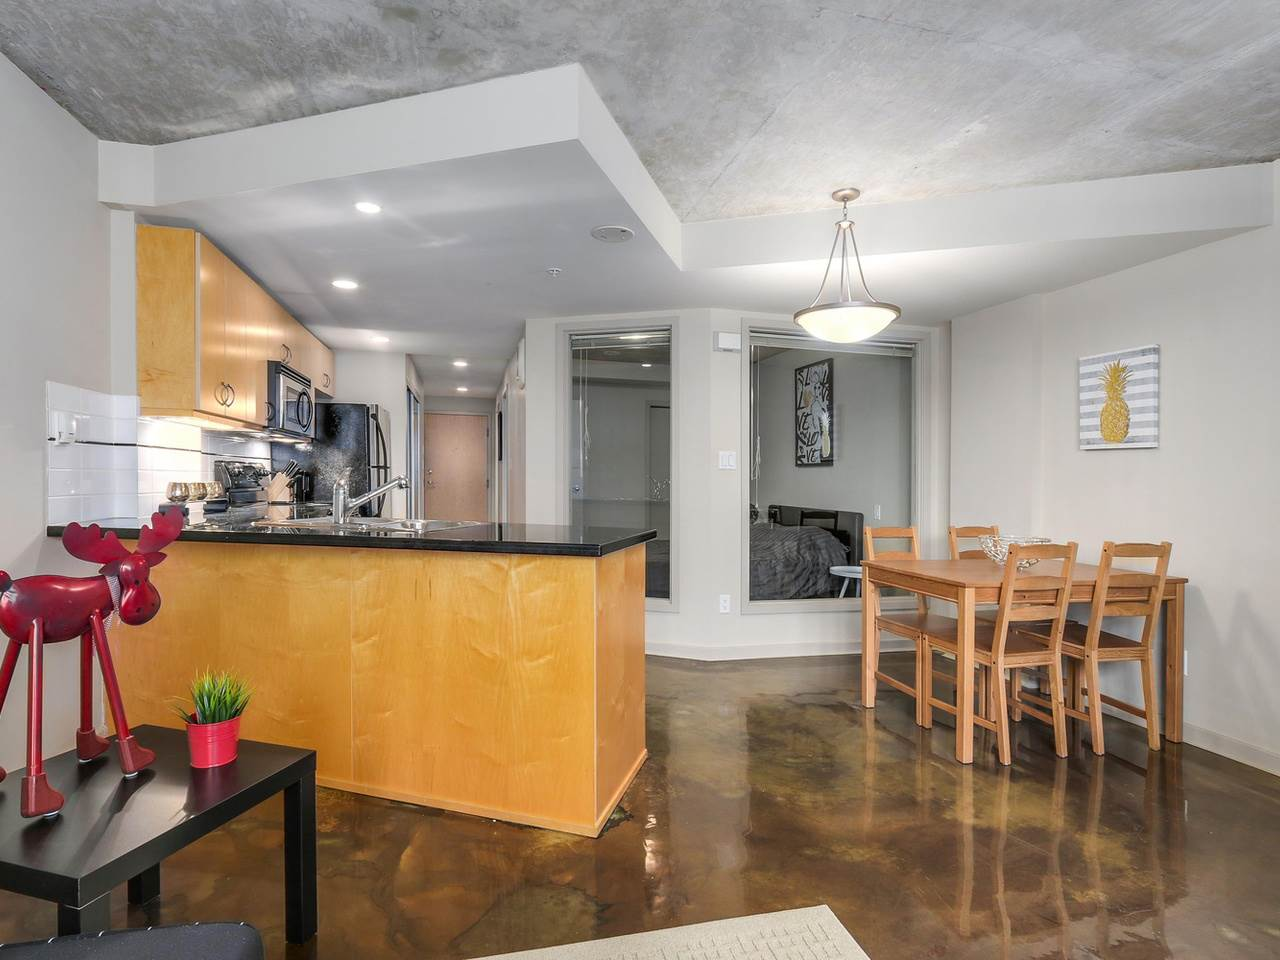 Condo Apartment at 905 STATION STREET, Vancouver East, British Columbia. Image 3